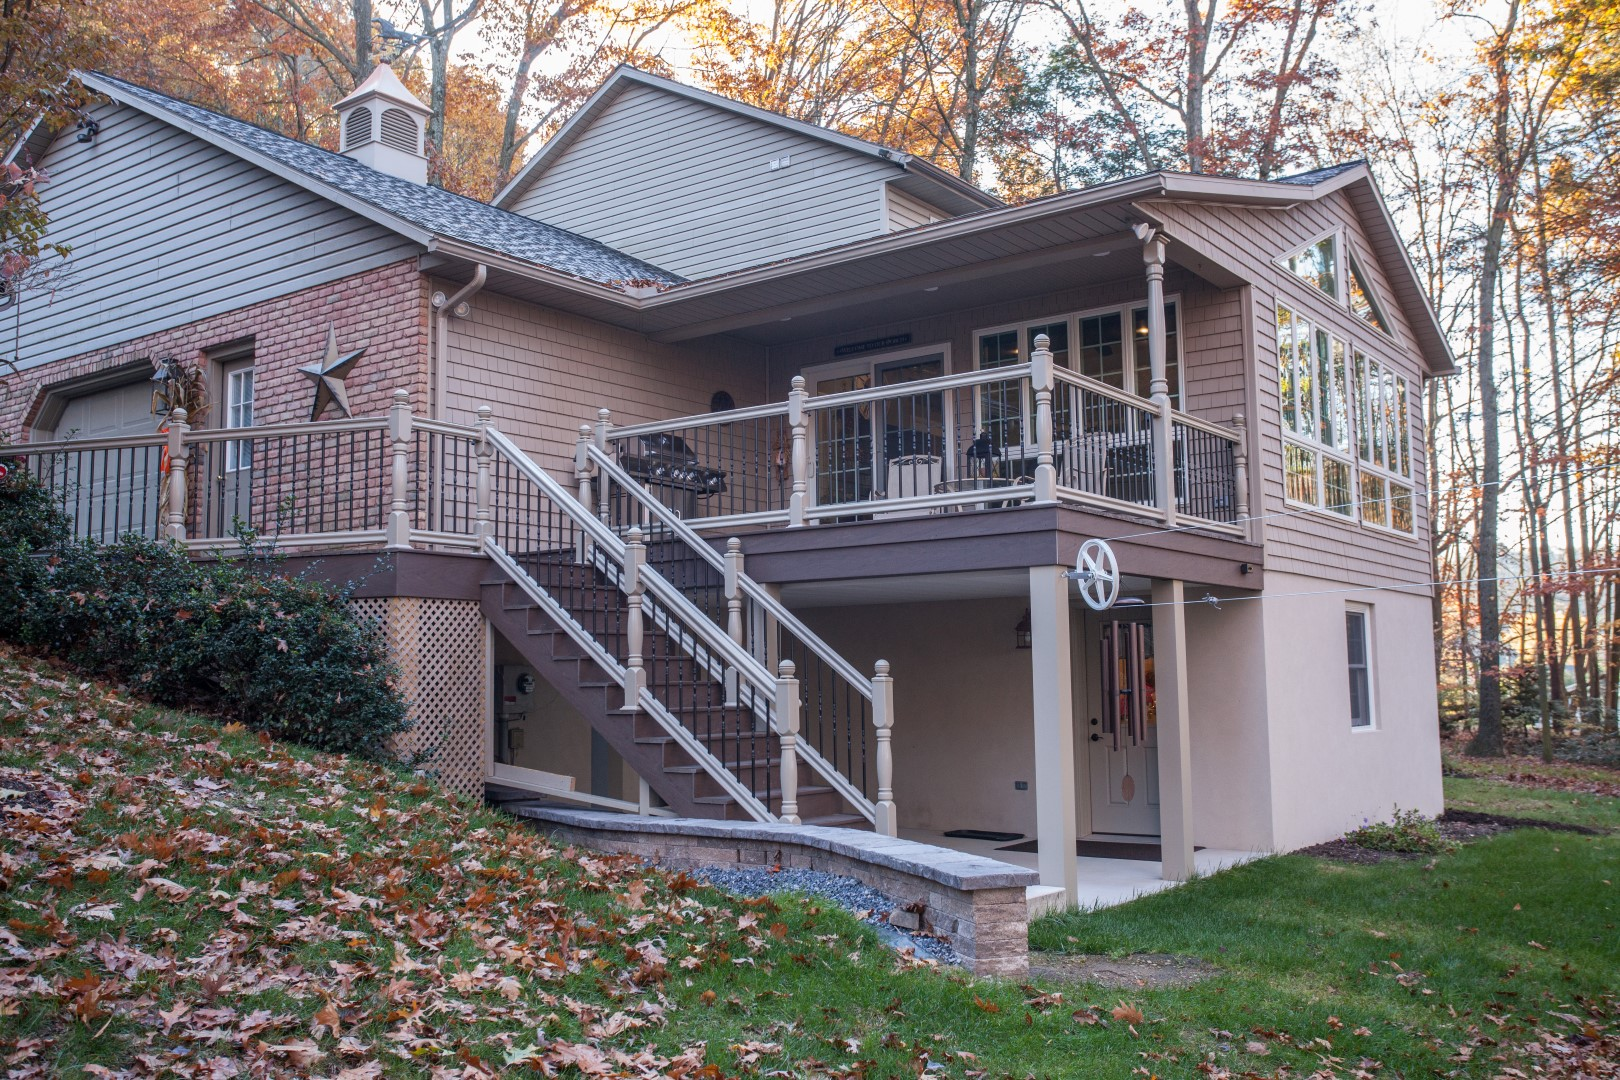 Schuylkill county custom home builder earl weaver for Two story sunroom additions